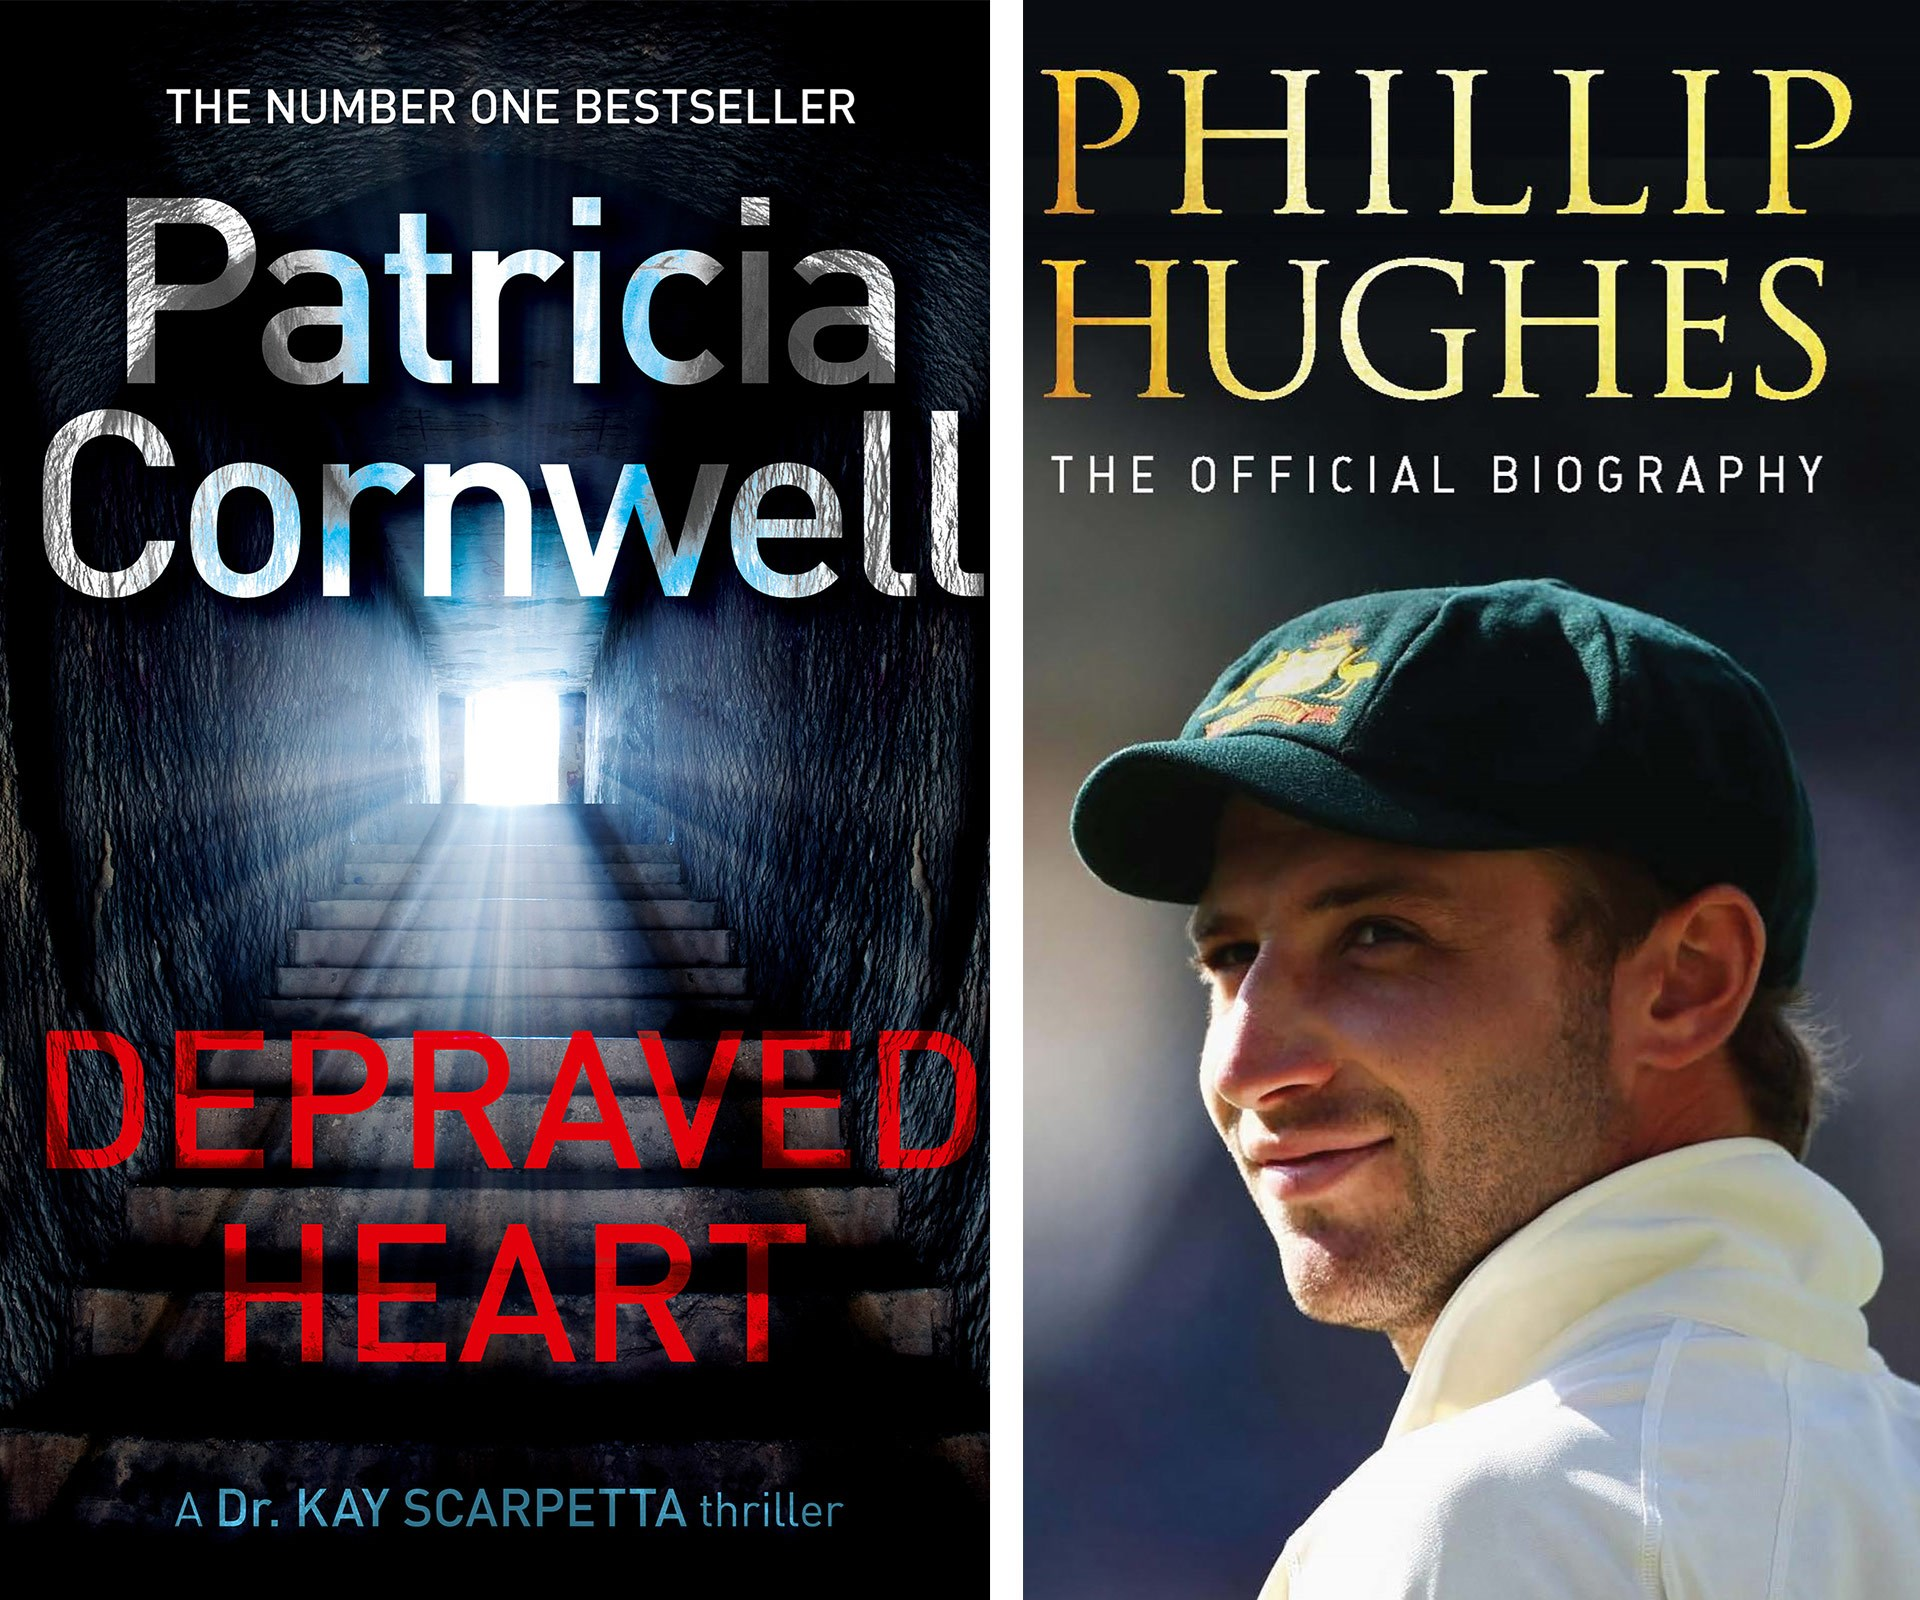 Granny will give you a big smooch for Patricia Cornwell's latest bestseller, *Depraved Heart*. While Pop will be mighty proud is you pick up a copy of the poignant biography of late cricketer, Phillip Hughes.